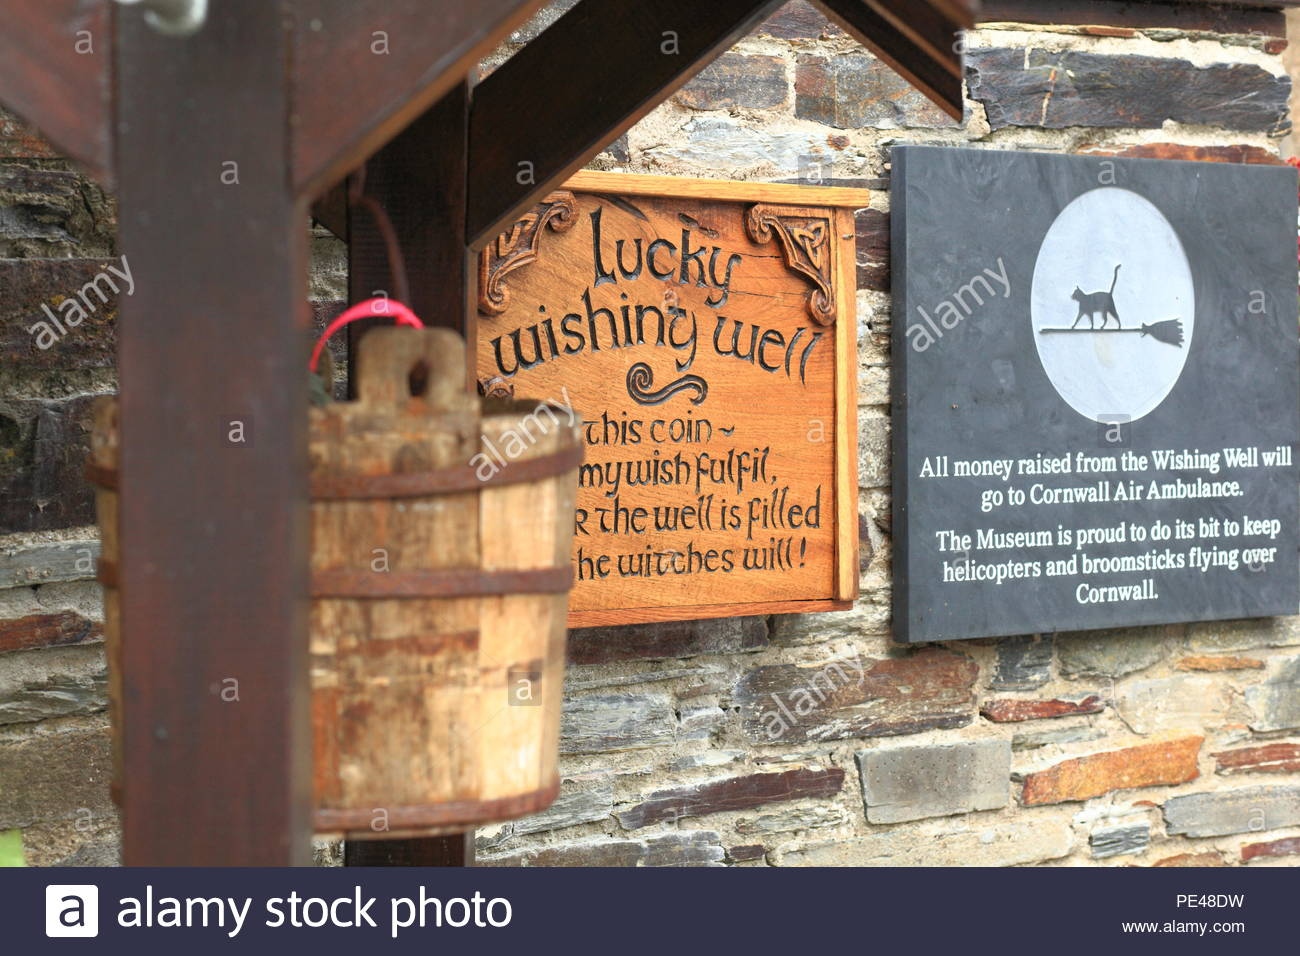 A quirky Wishing Well at Boscastle, North Cornwall, UK. Summer August 2018 - Stock Image